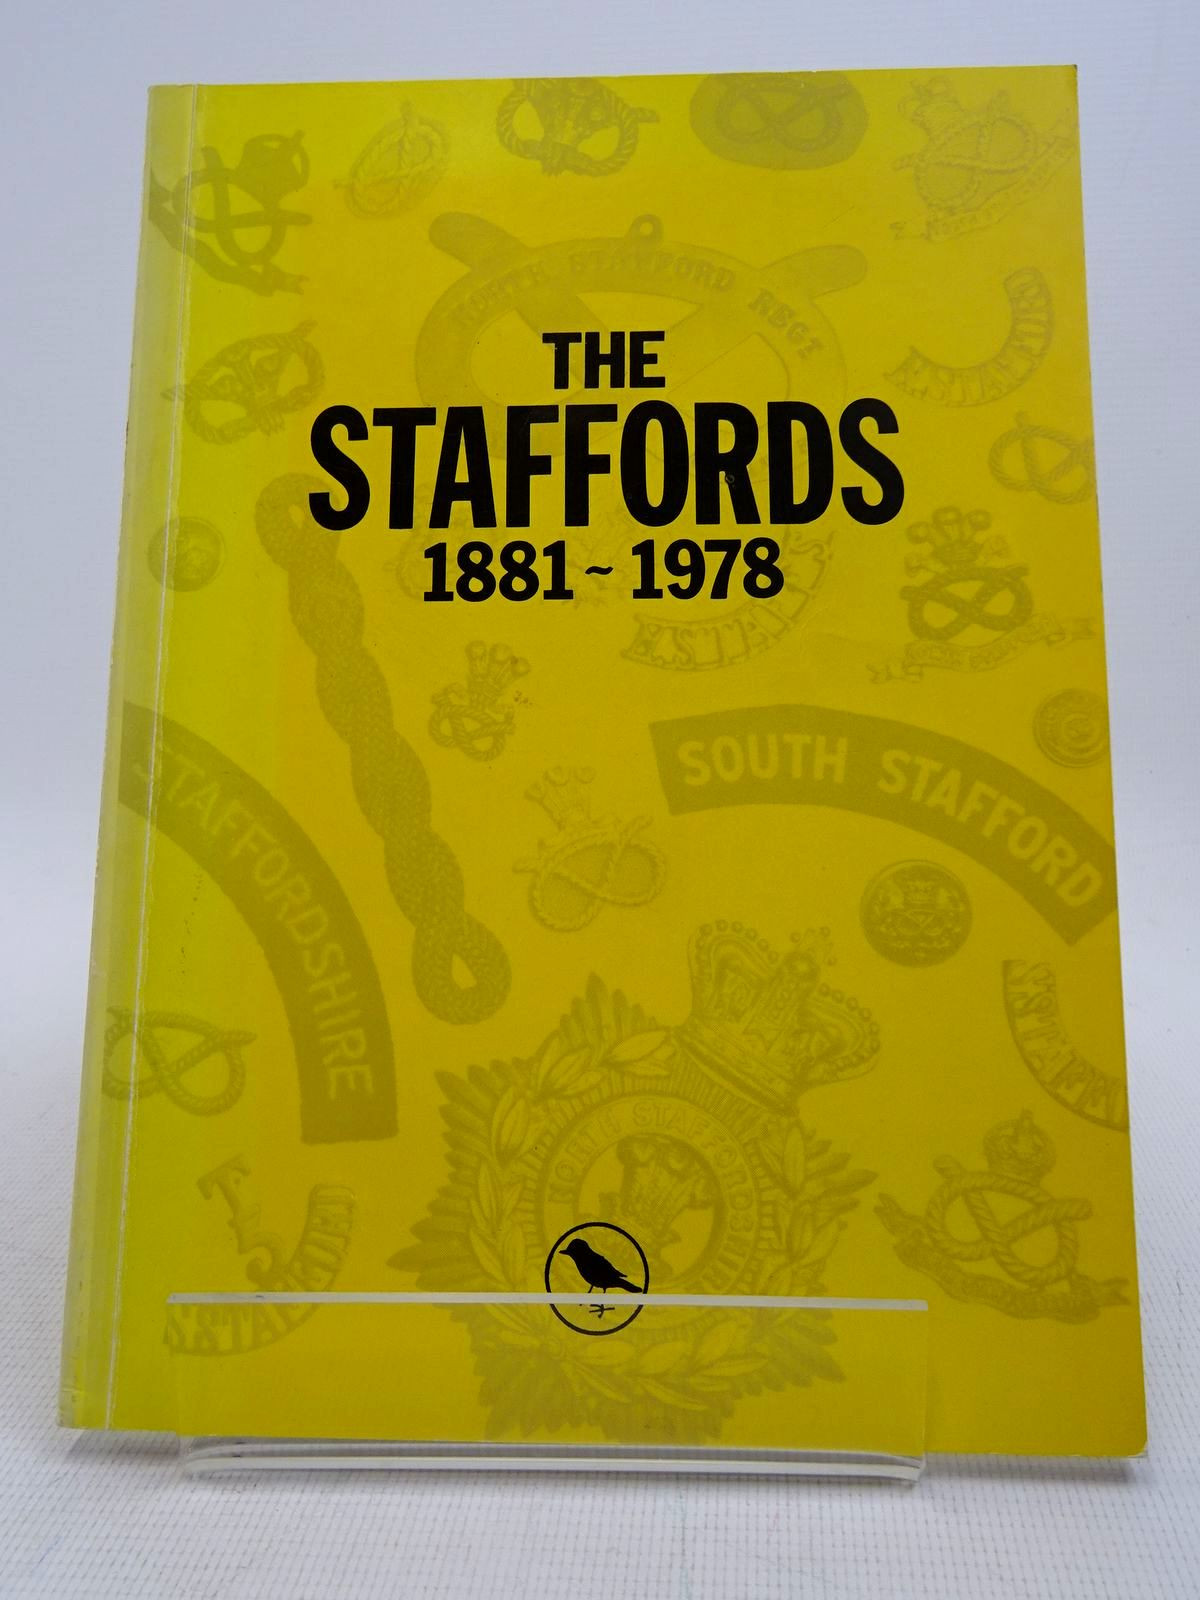 Photo of THE STAFFORDS 1881 - 1978 BADGES AND UNIFORMS written by Rosignoli, Guido<br />Whitehouse, C.J. published by Rosignoli (STOCK CODE: 1817166)  for sale by Stella & Rose's Books